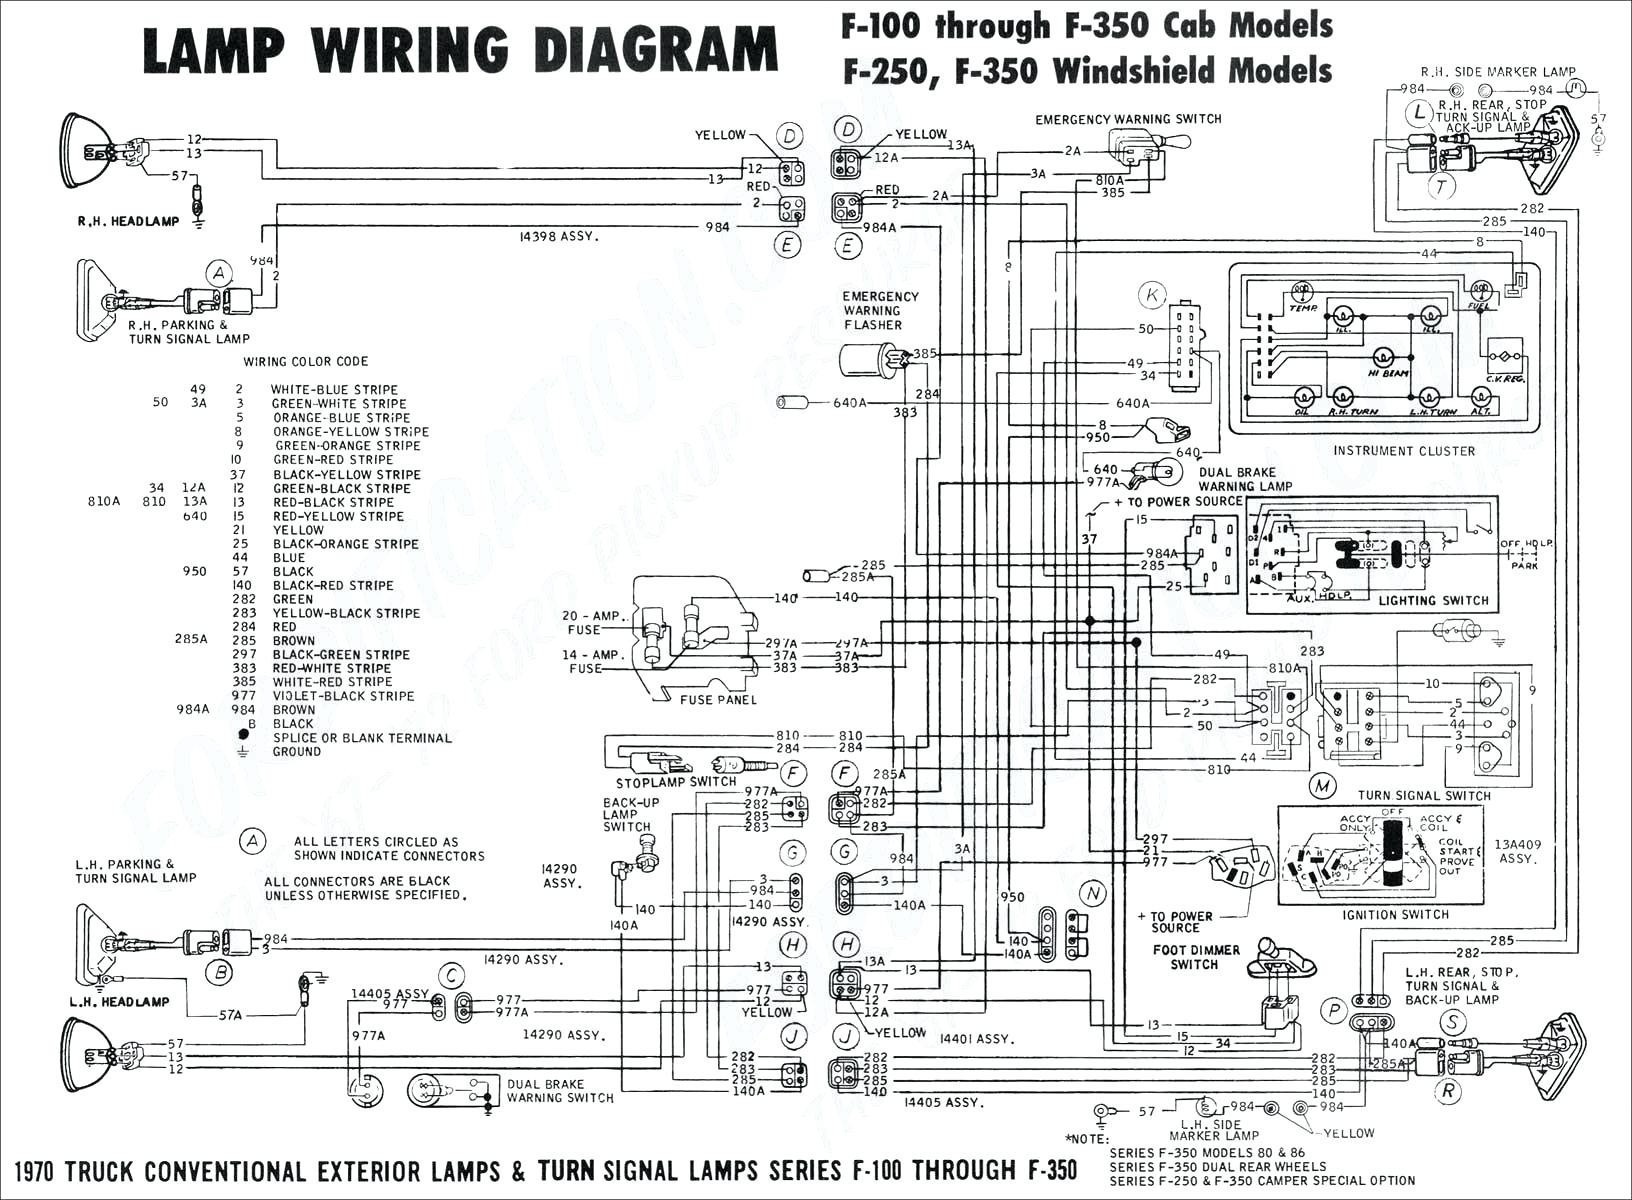 2006 F150 Engine Diagram ford F150 Engine Diagram Another Blog About Wiring Diagram • Of 2006 F150 Engine Diagram ford F150 Engine Diagram Another Blog About Wiring Diagram •